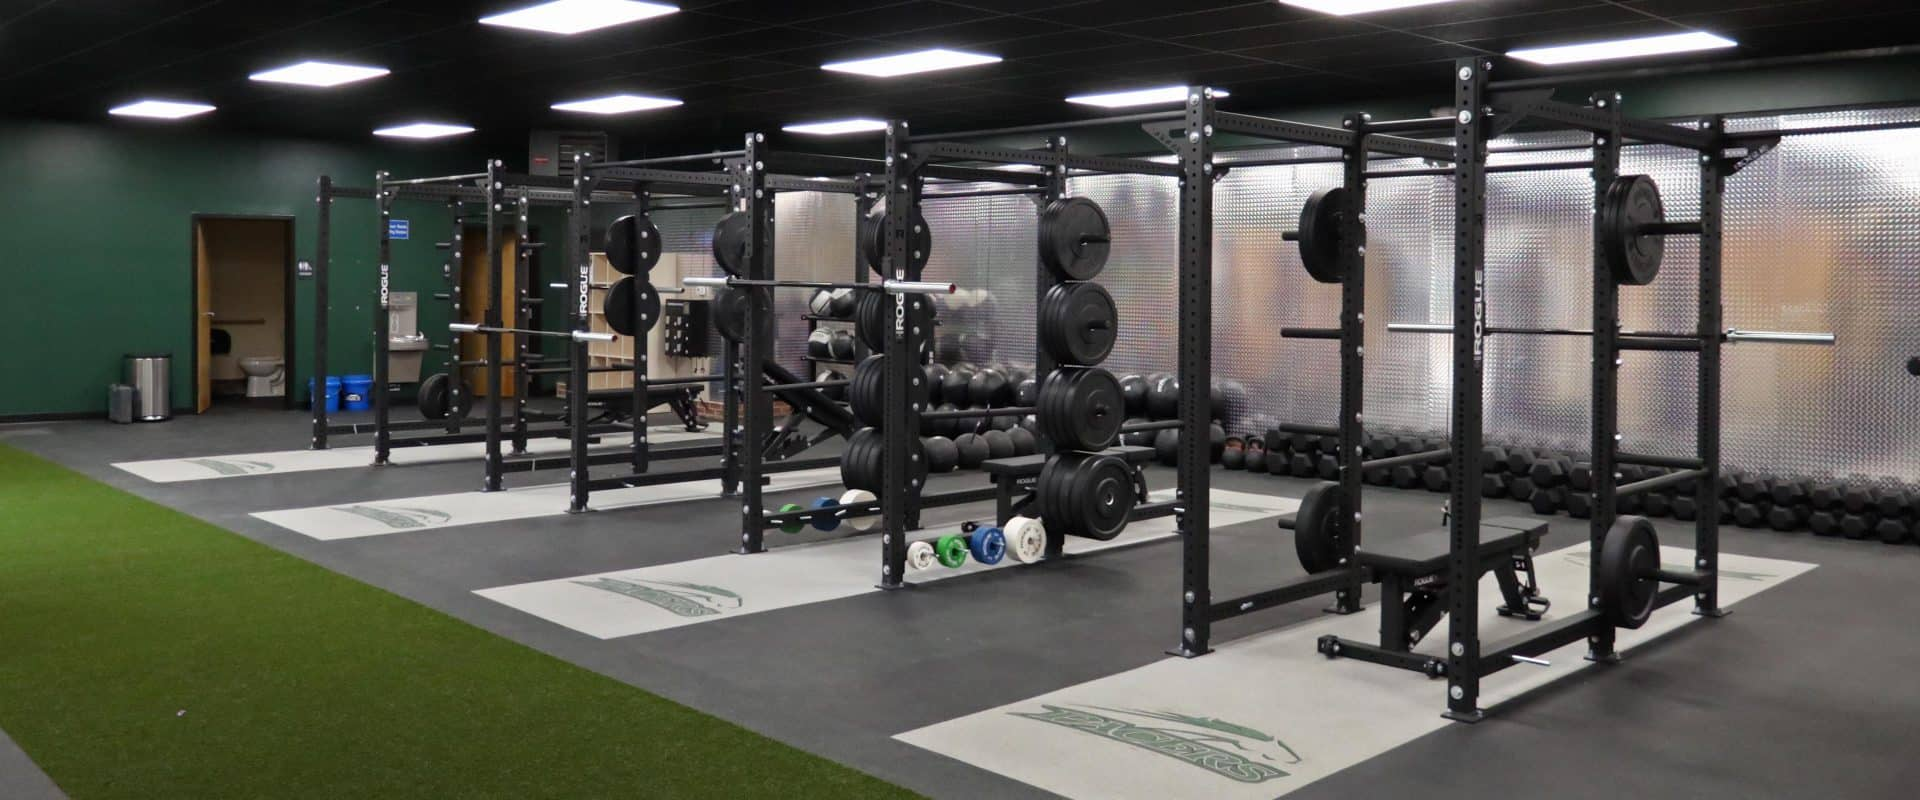 A promo photo for the campus's new workout center.